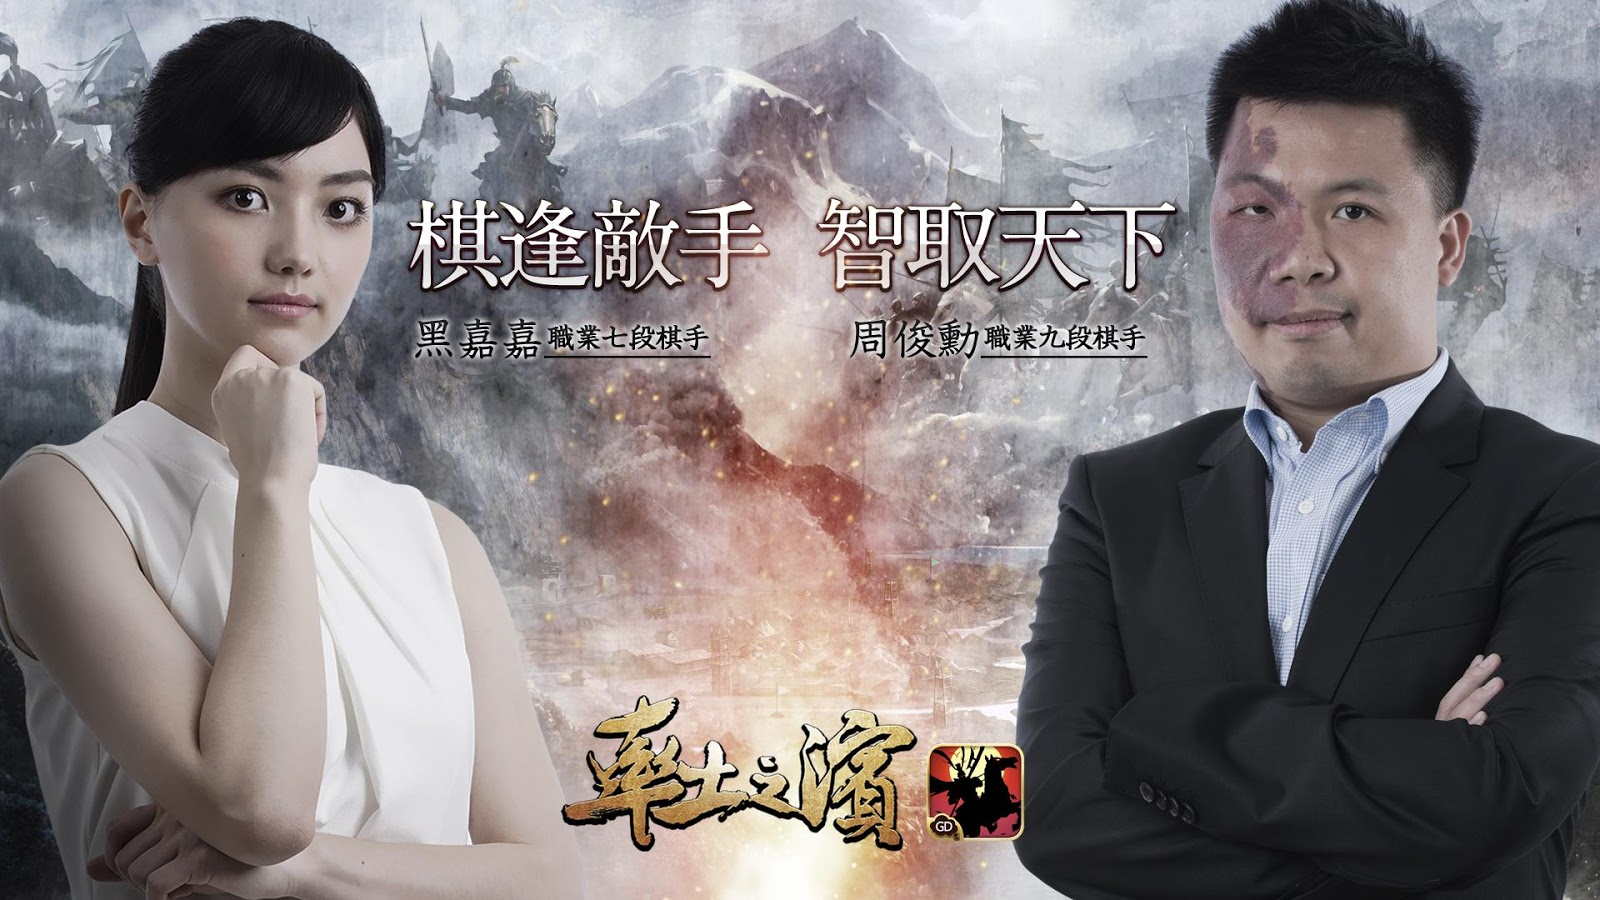 率土之濱-棋逢敵手 智取天下 Screenshot 0